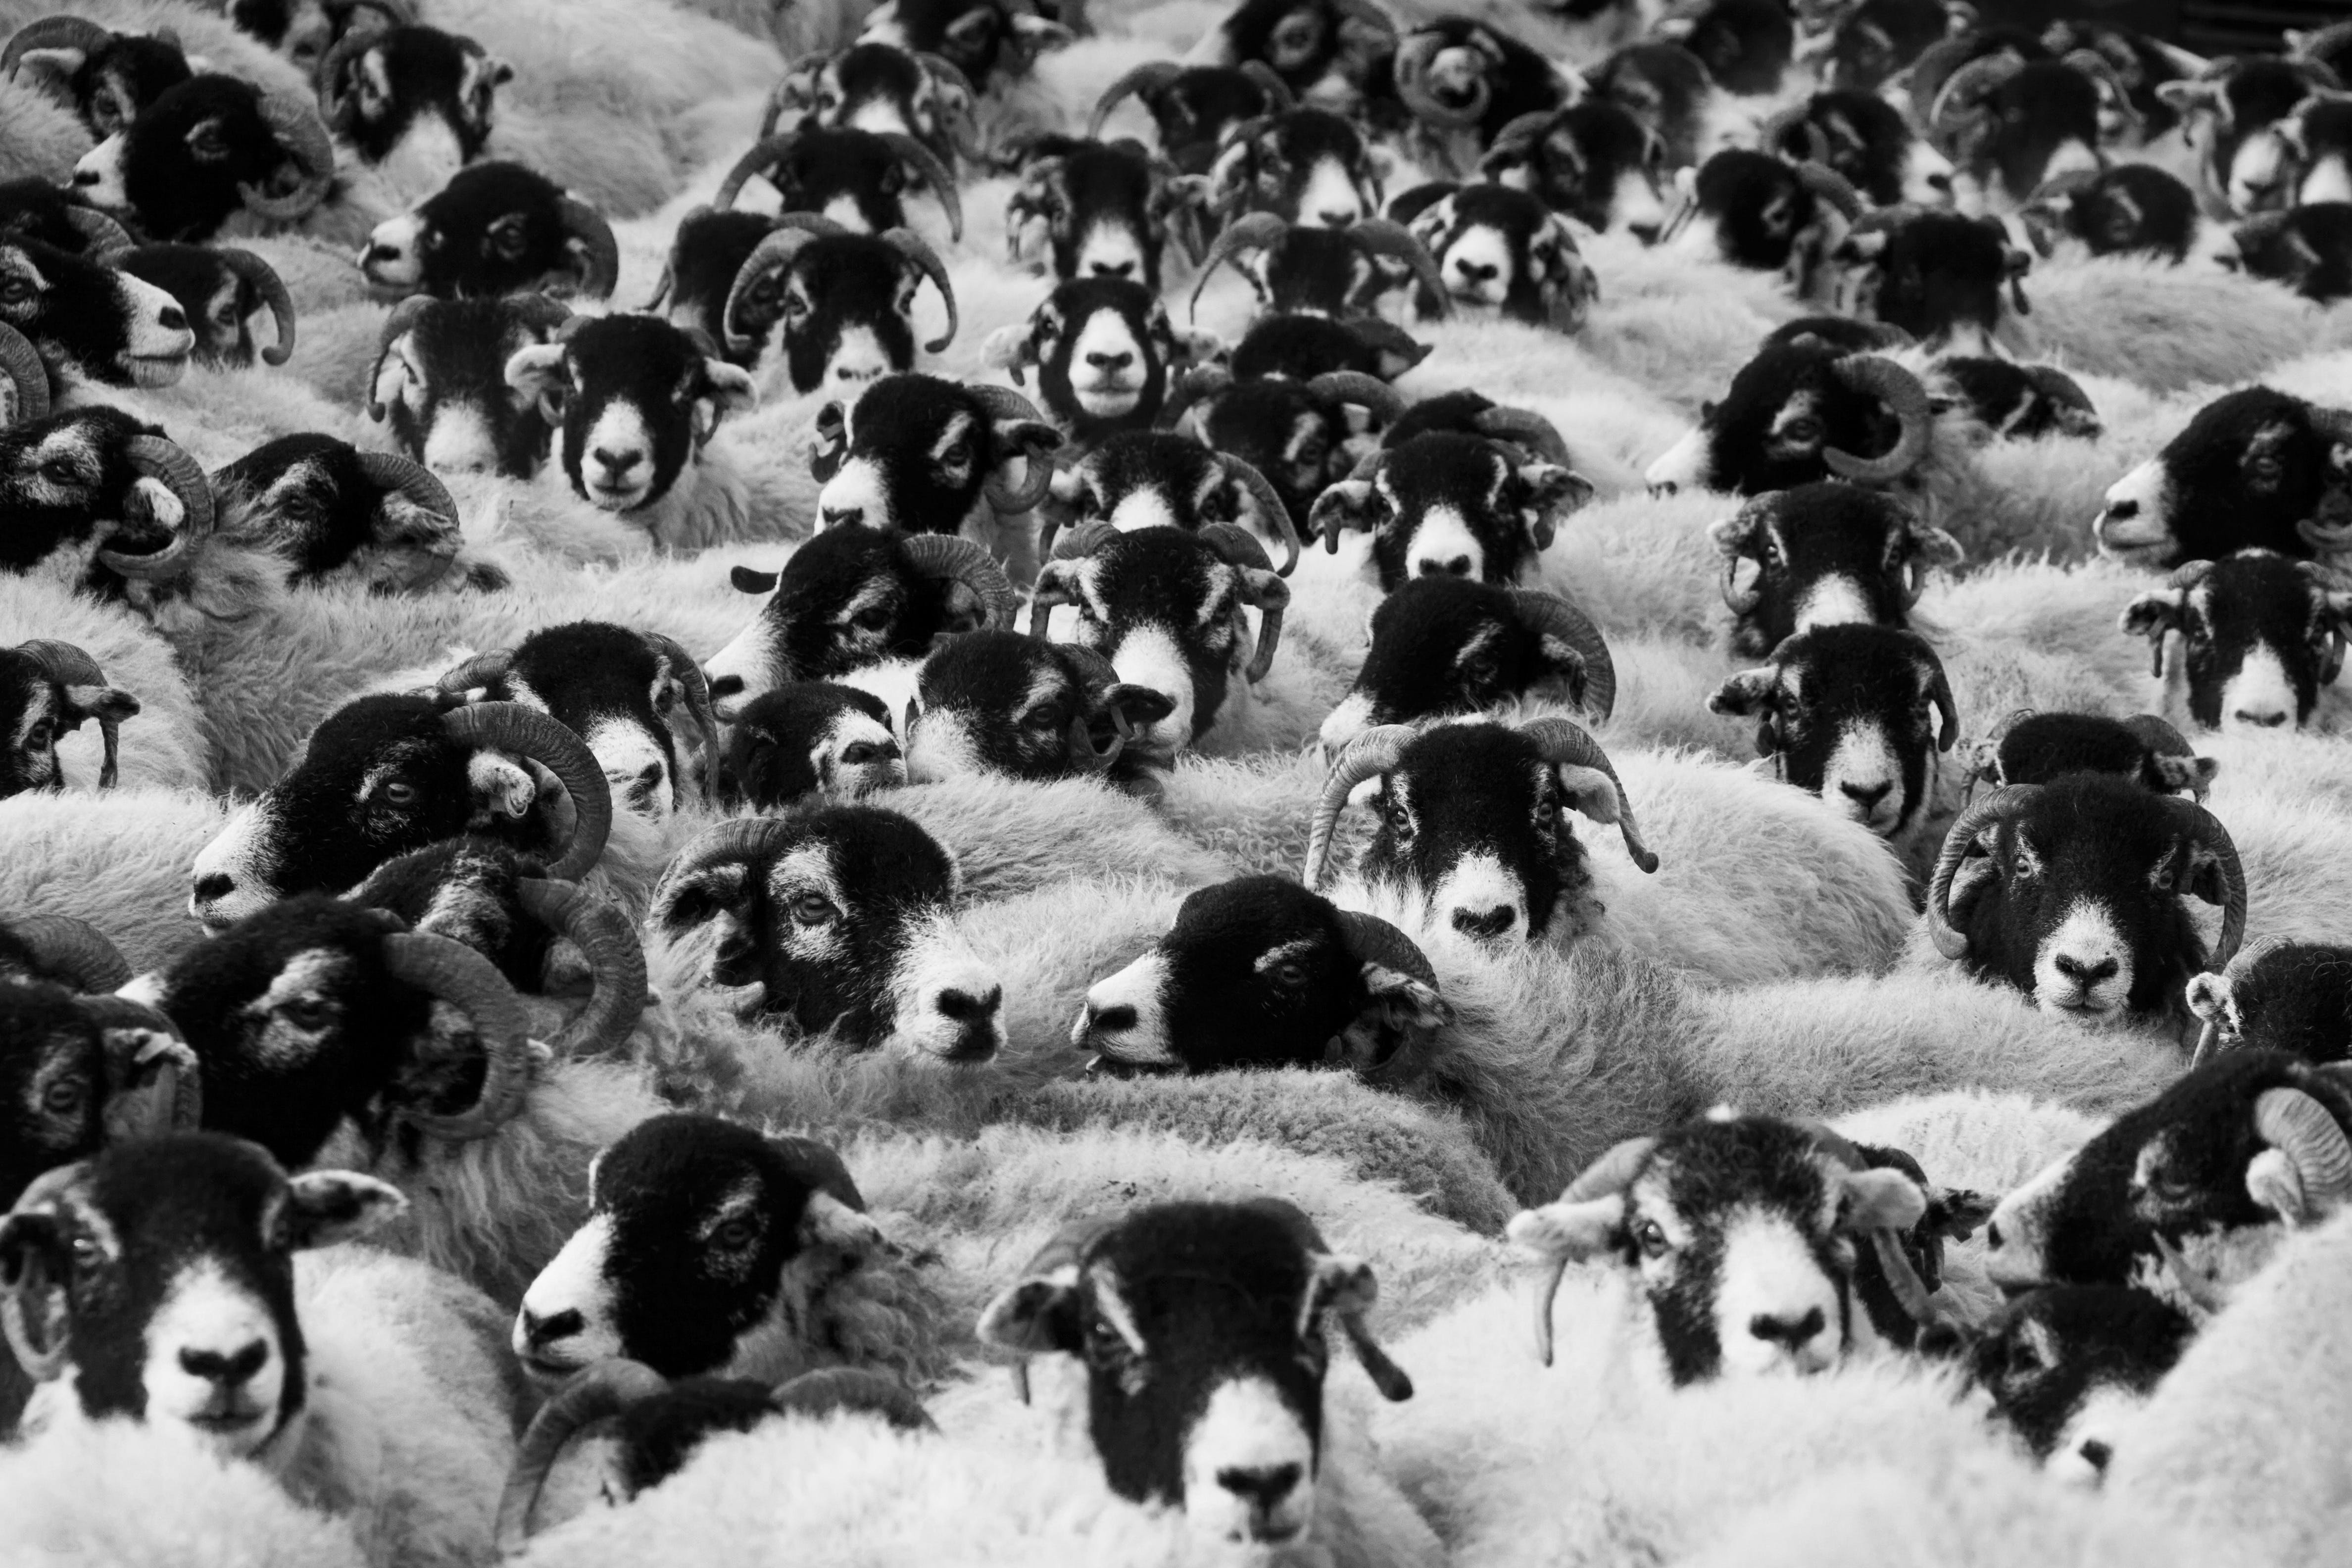 Greyscale Photo of Sheep